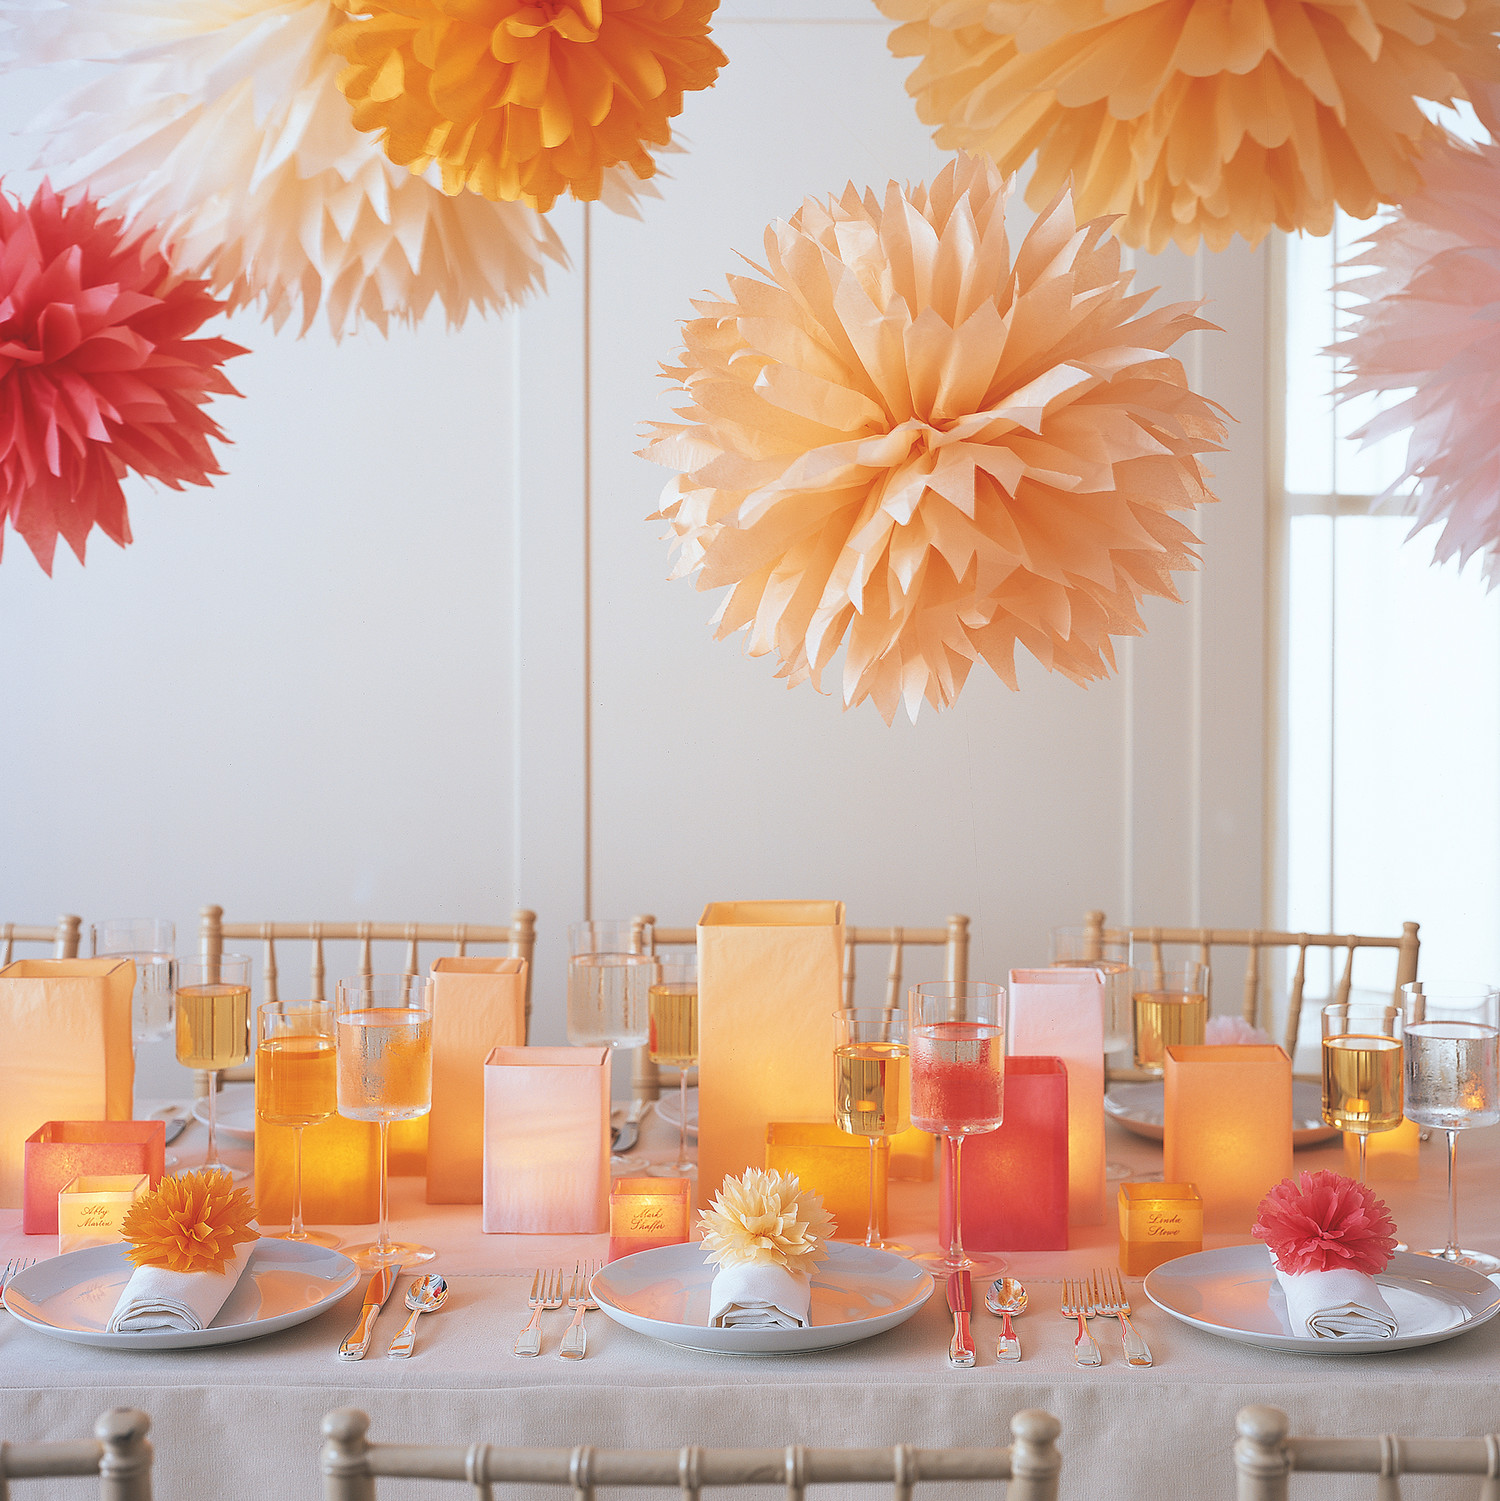 floral party decor martha stewartfloral party decor